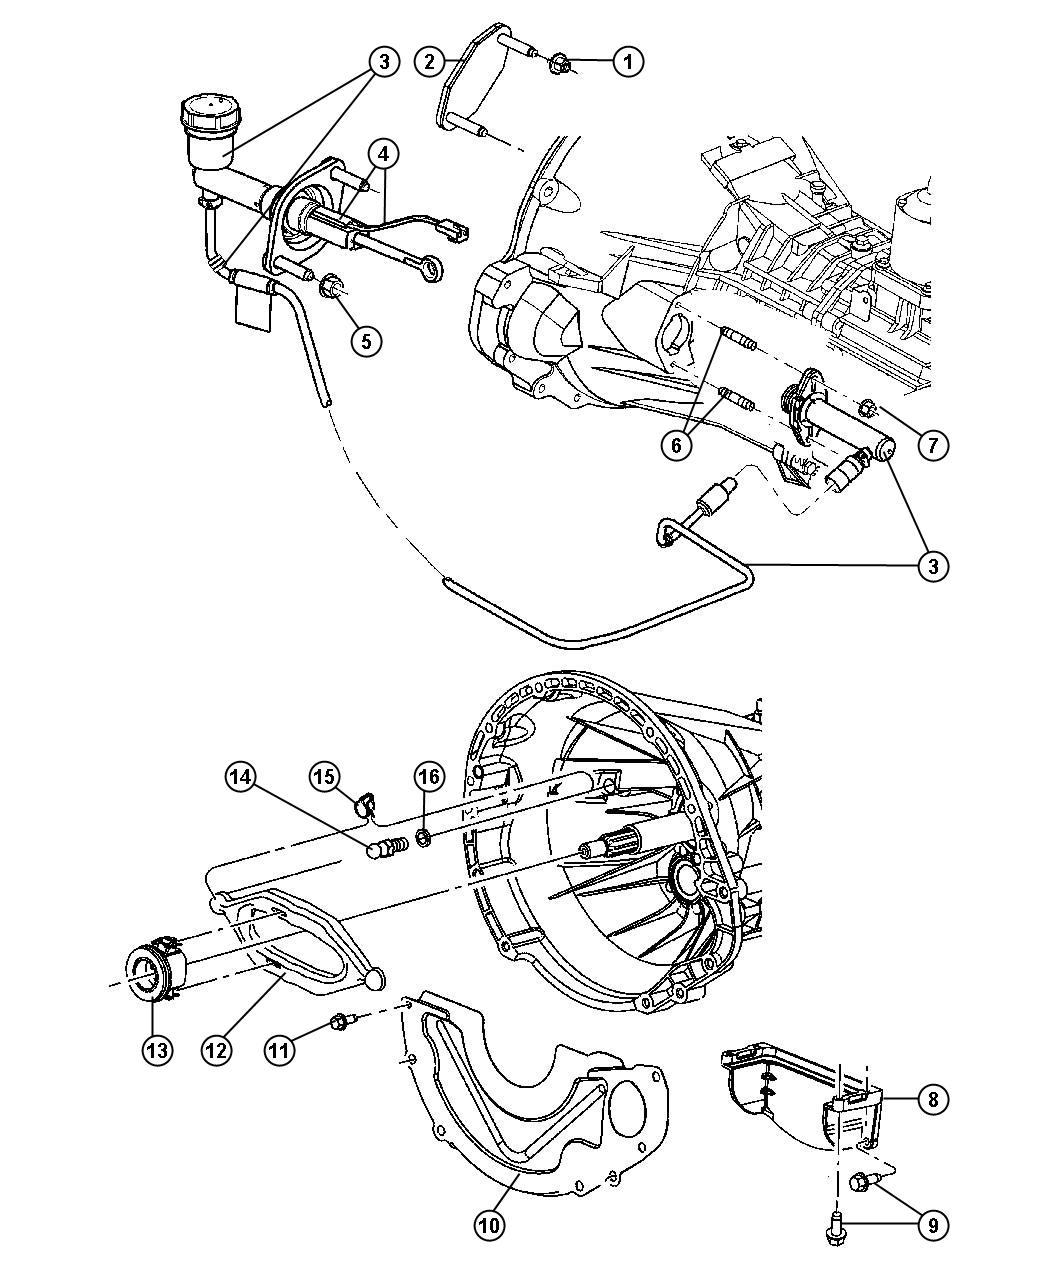 Clutch Assembly With Images